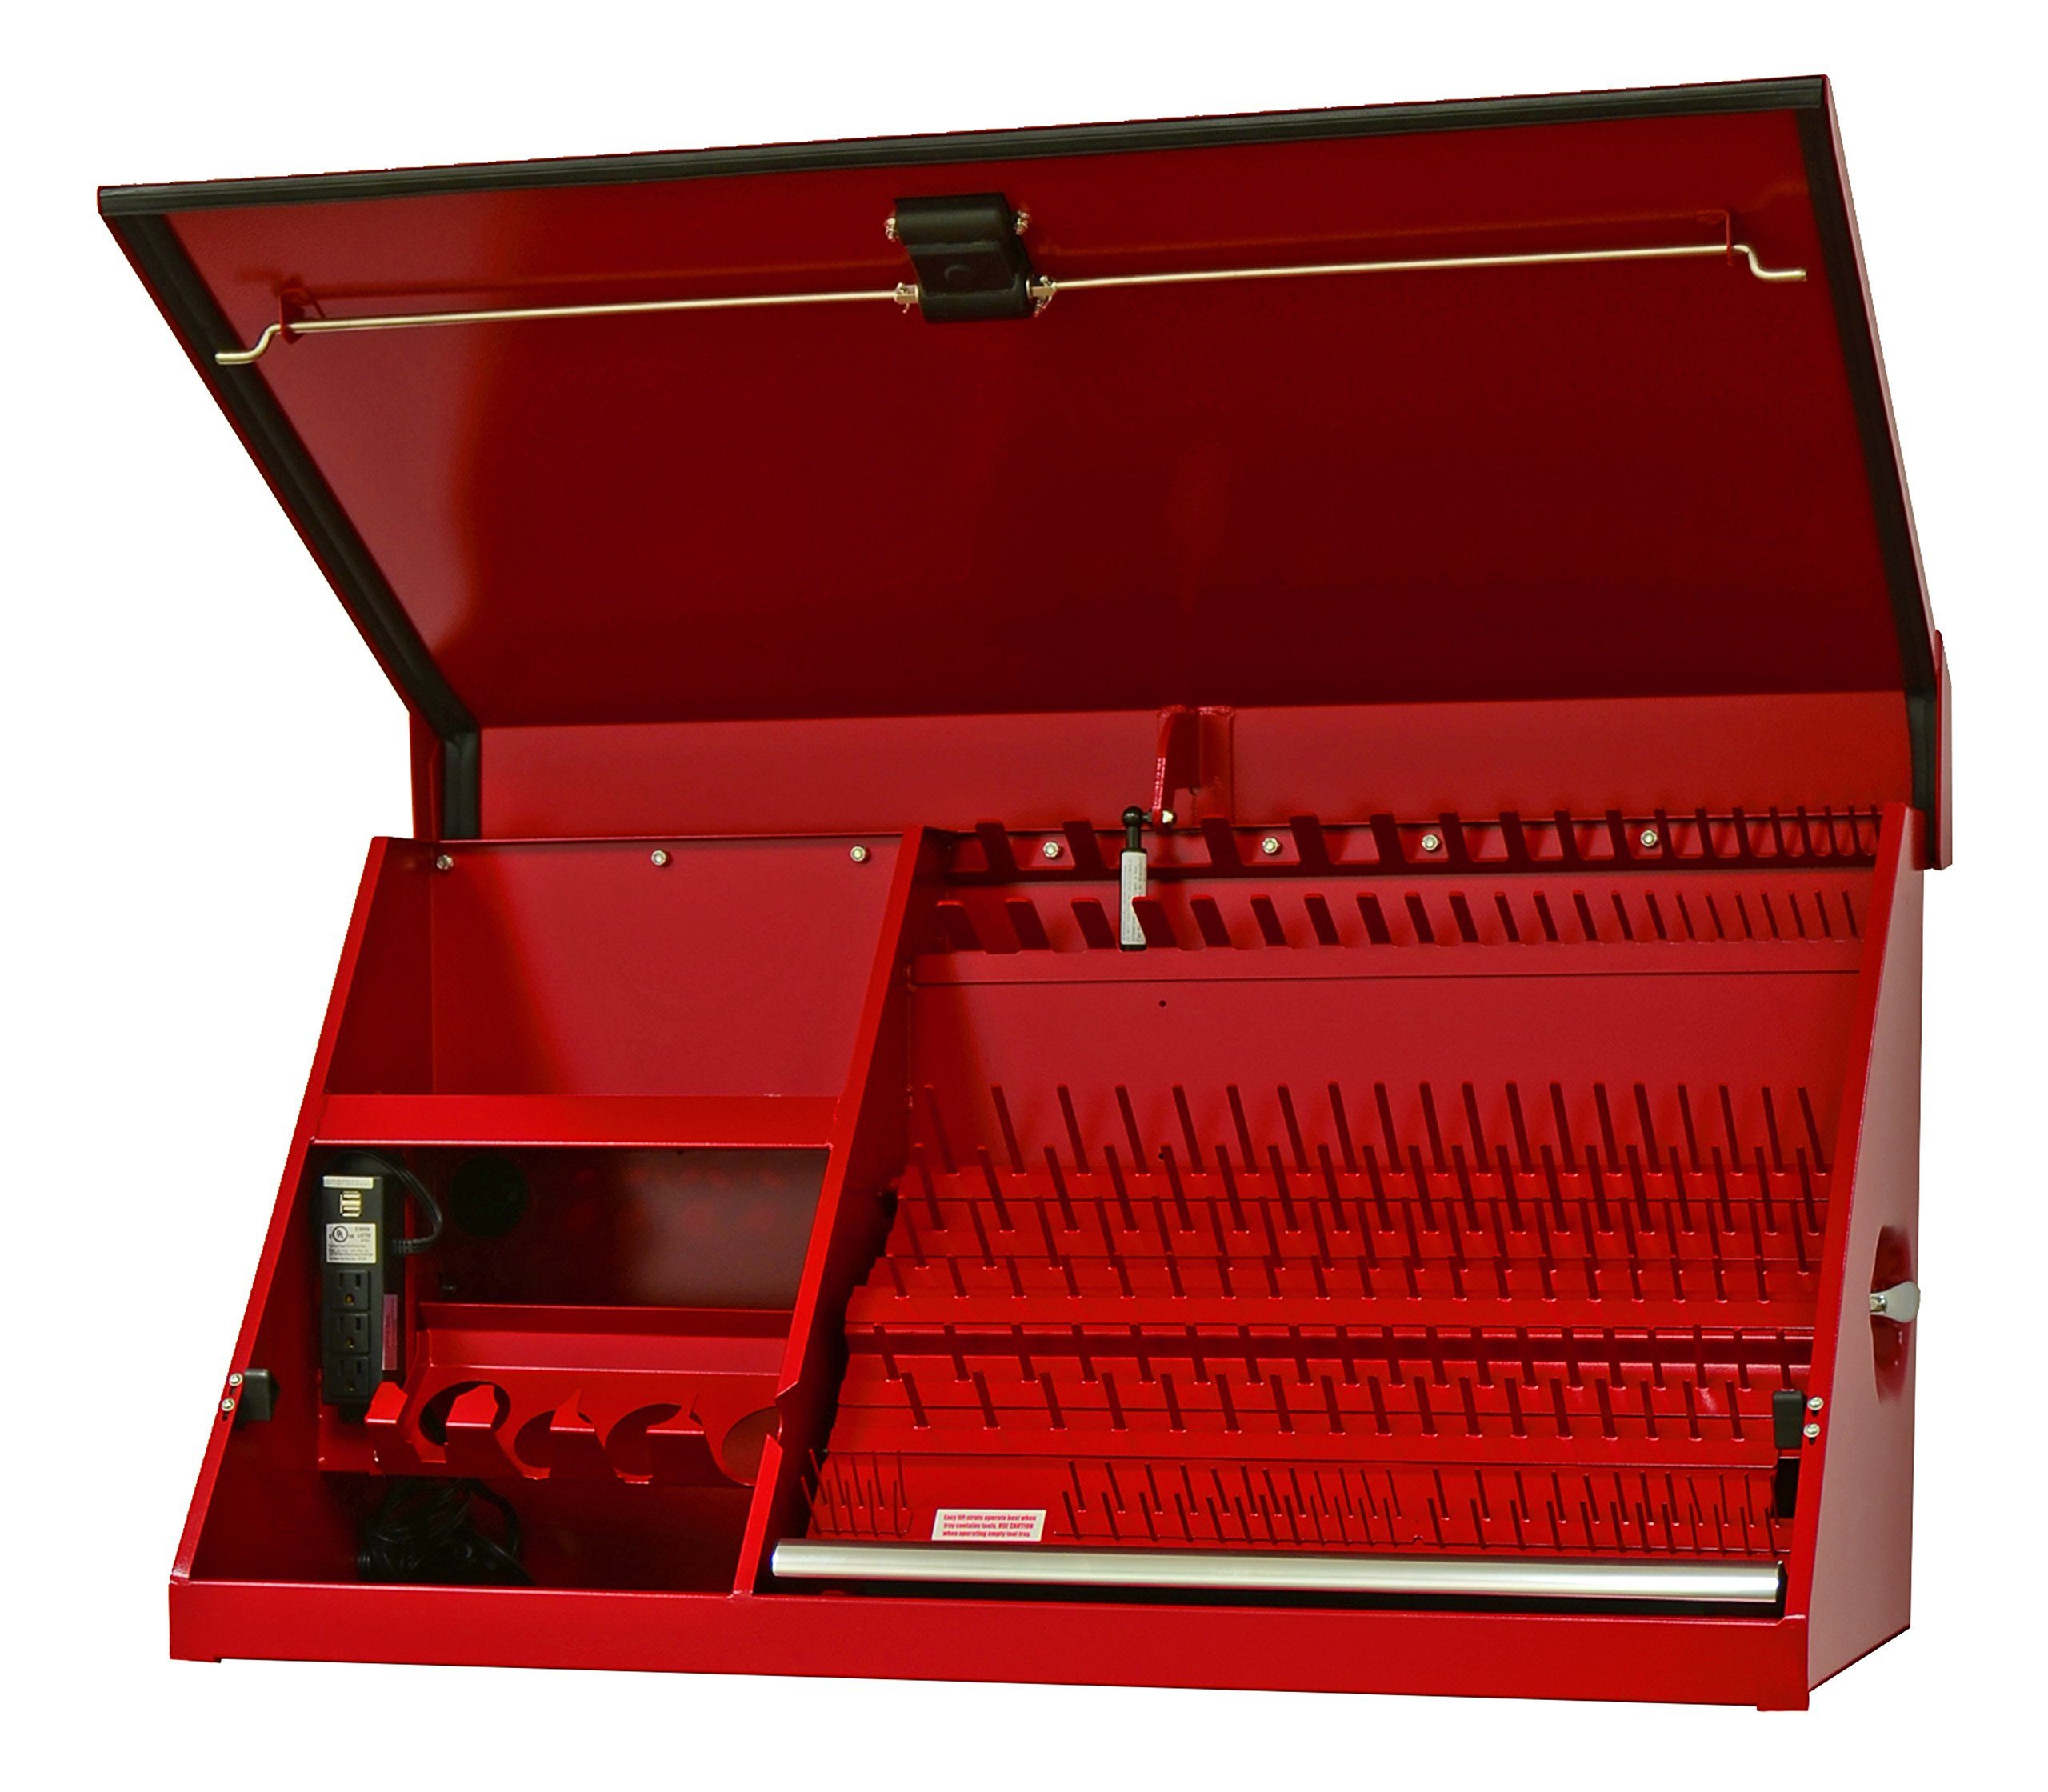 Extreme Tools PWS4100TXRD Pws Series Extreme Portable Workstation, 41-Inch, Red Textured, Weather-Resistant Finish